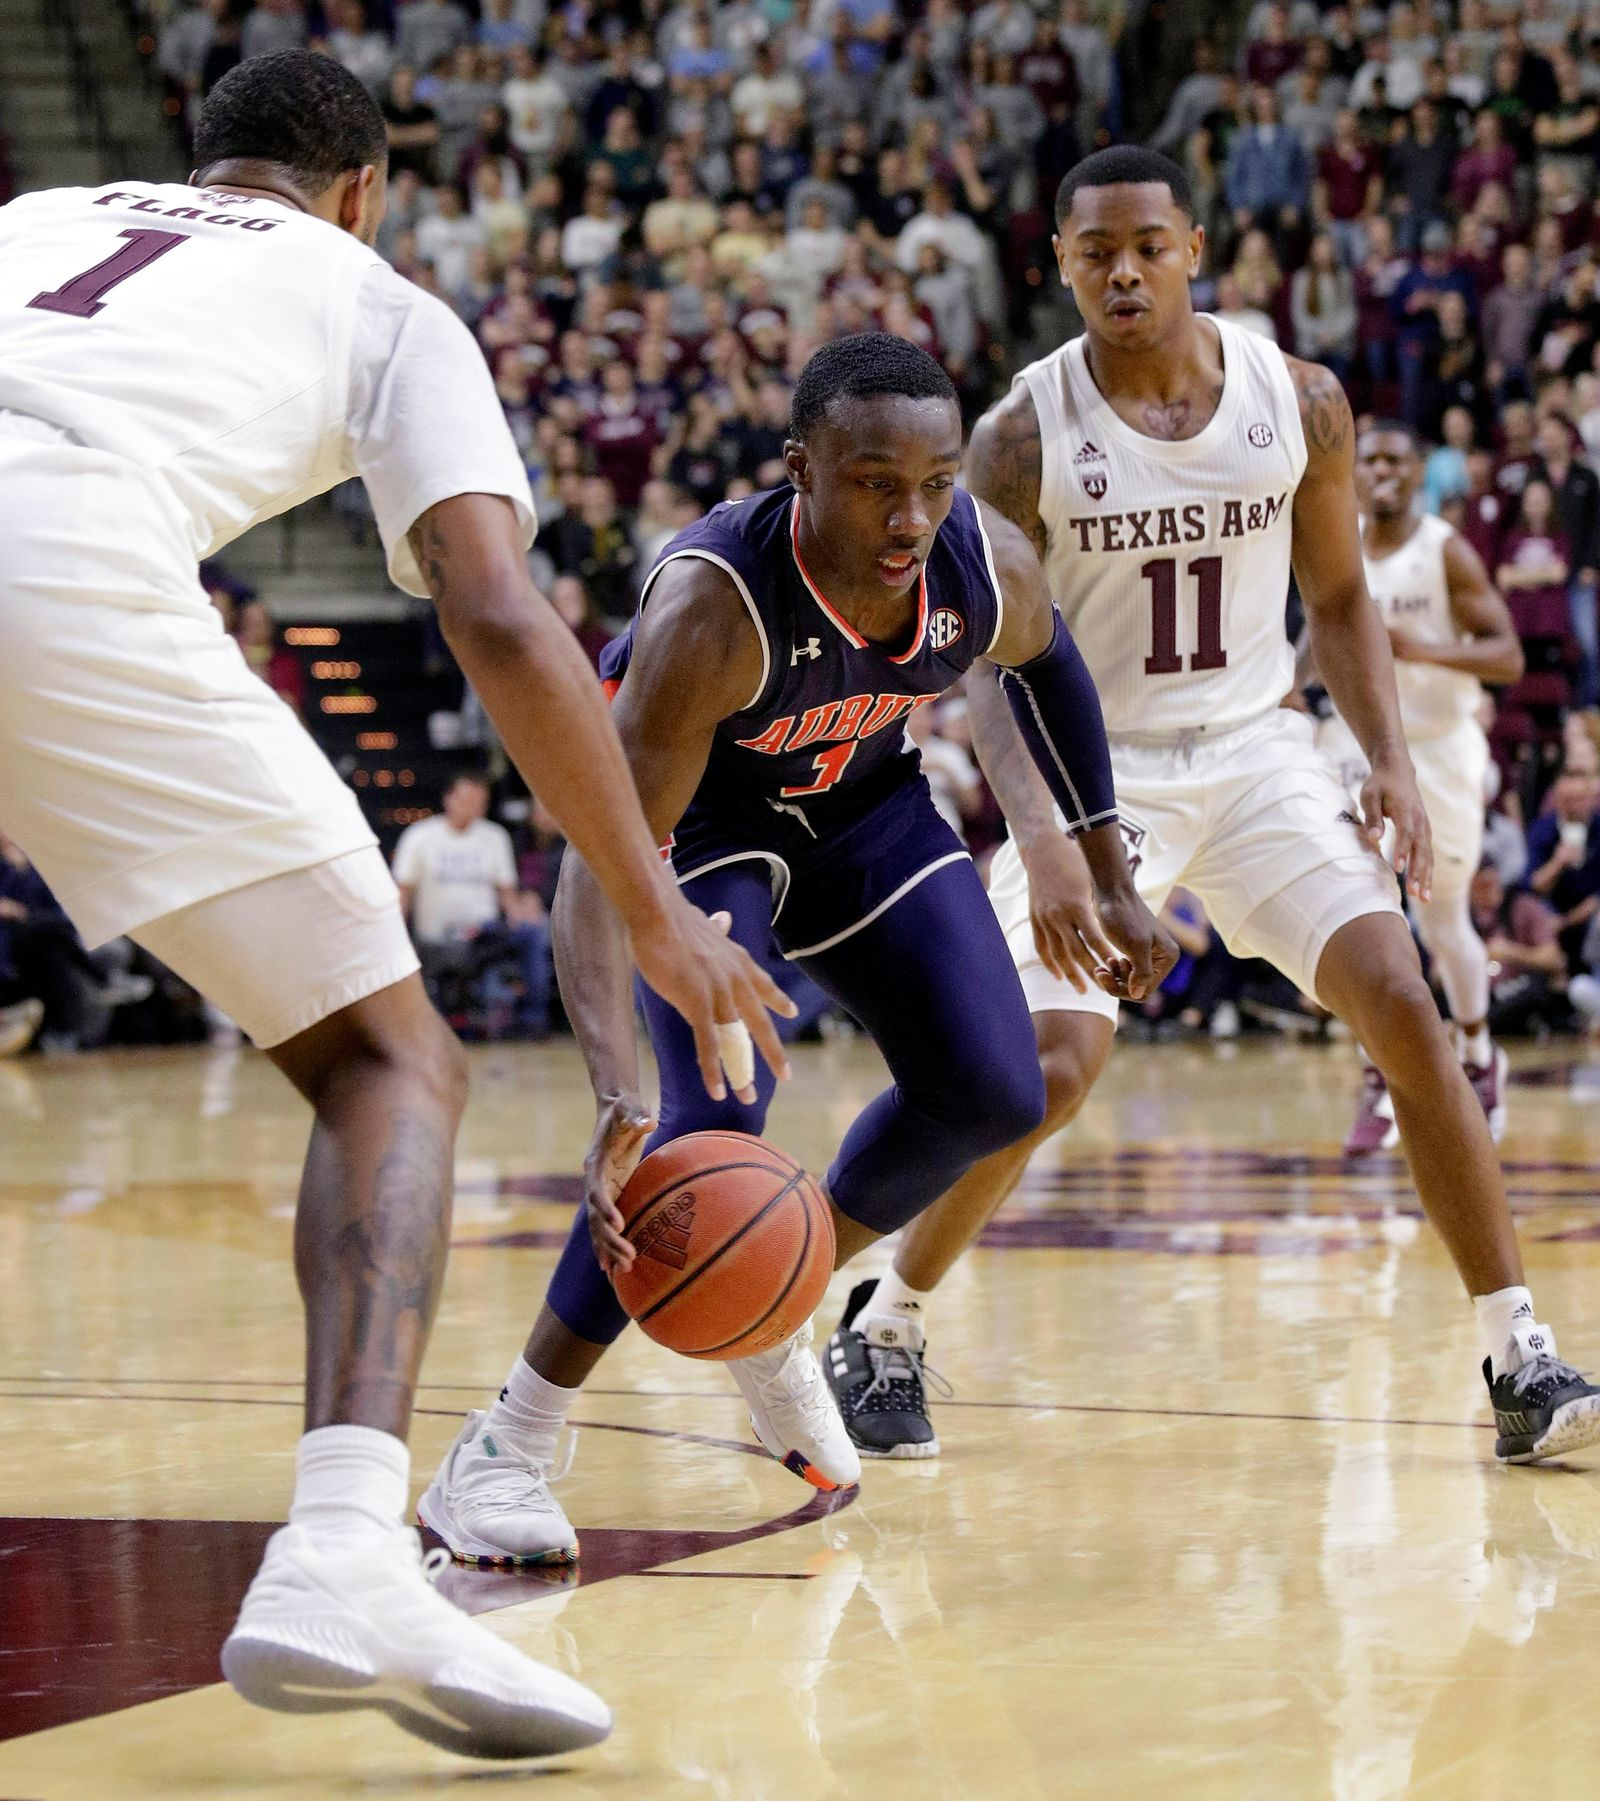 Auburn guard Jared Harper (1) drives between Texas A&M guard Savion Flagg (1) and guard Wendell Mitchell (11) during the second half of an NCAA college basketball game, Wednesday, Jan. 16, 2019, in College Station, Texas. (AP Photo/Michael Wyke)